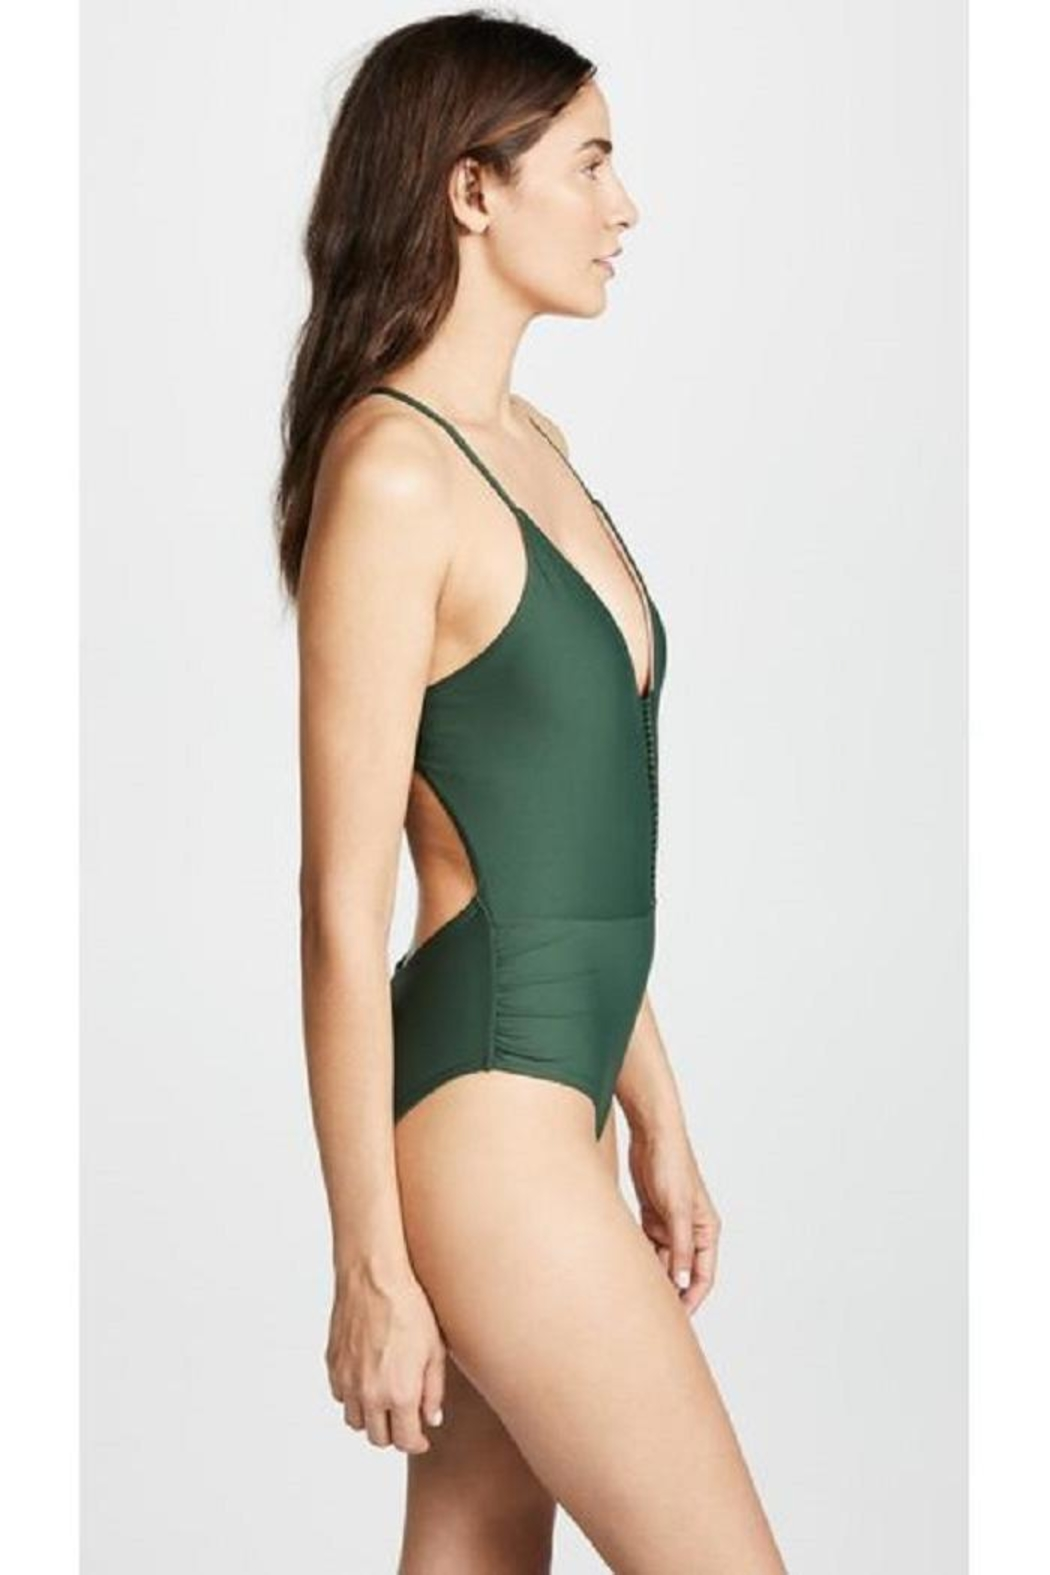 a472df6131 PilyQ Victoria Envy Onepiece from Miami by Neptunes — Shoptiques